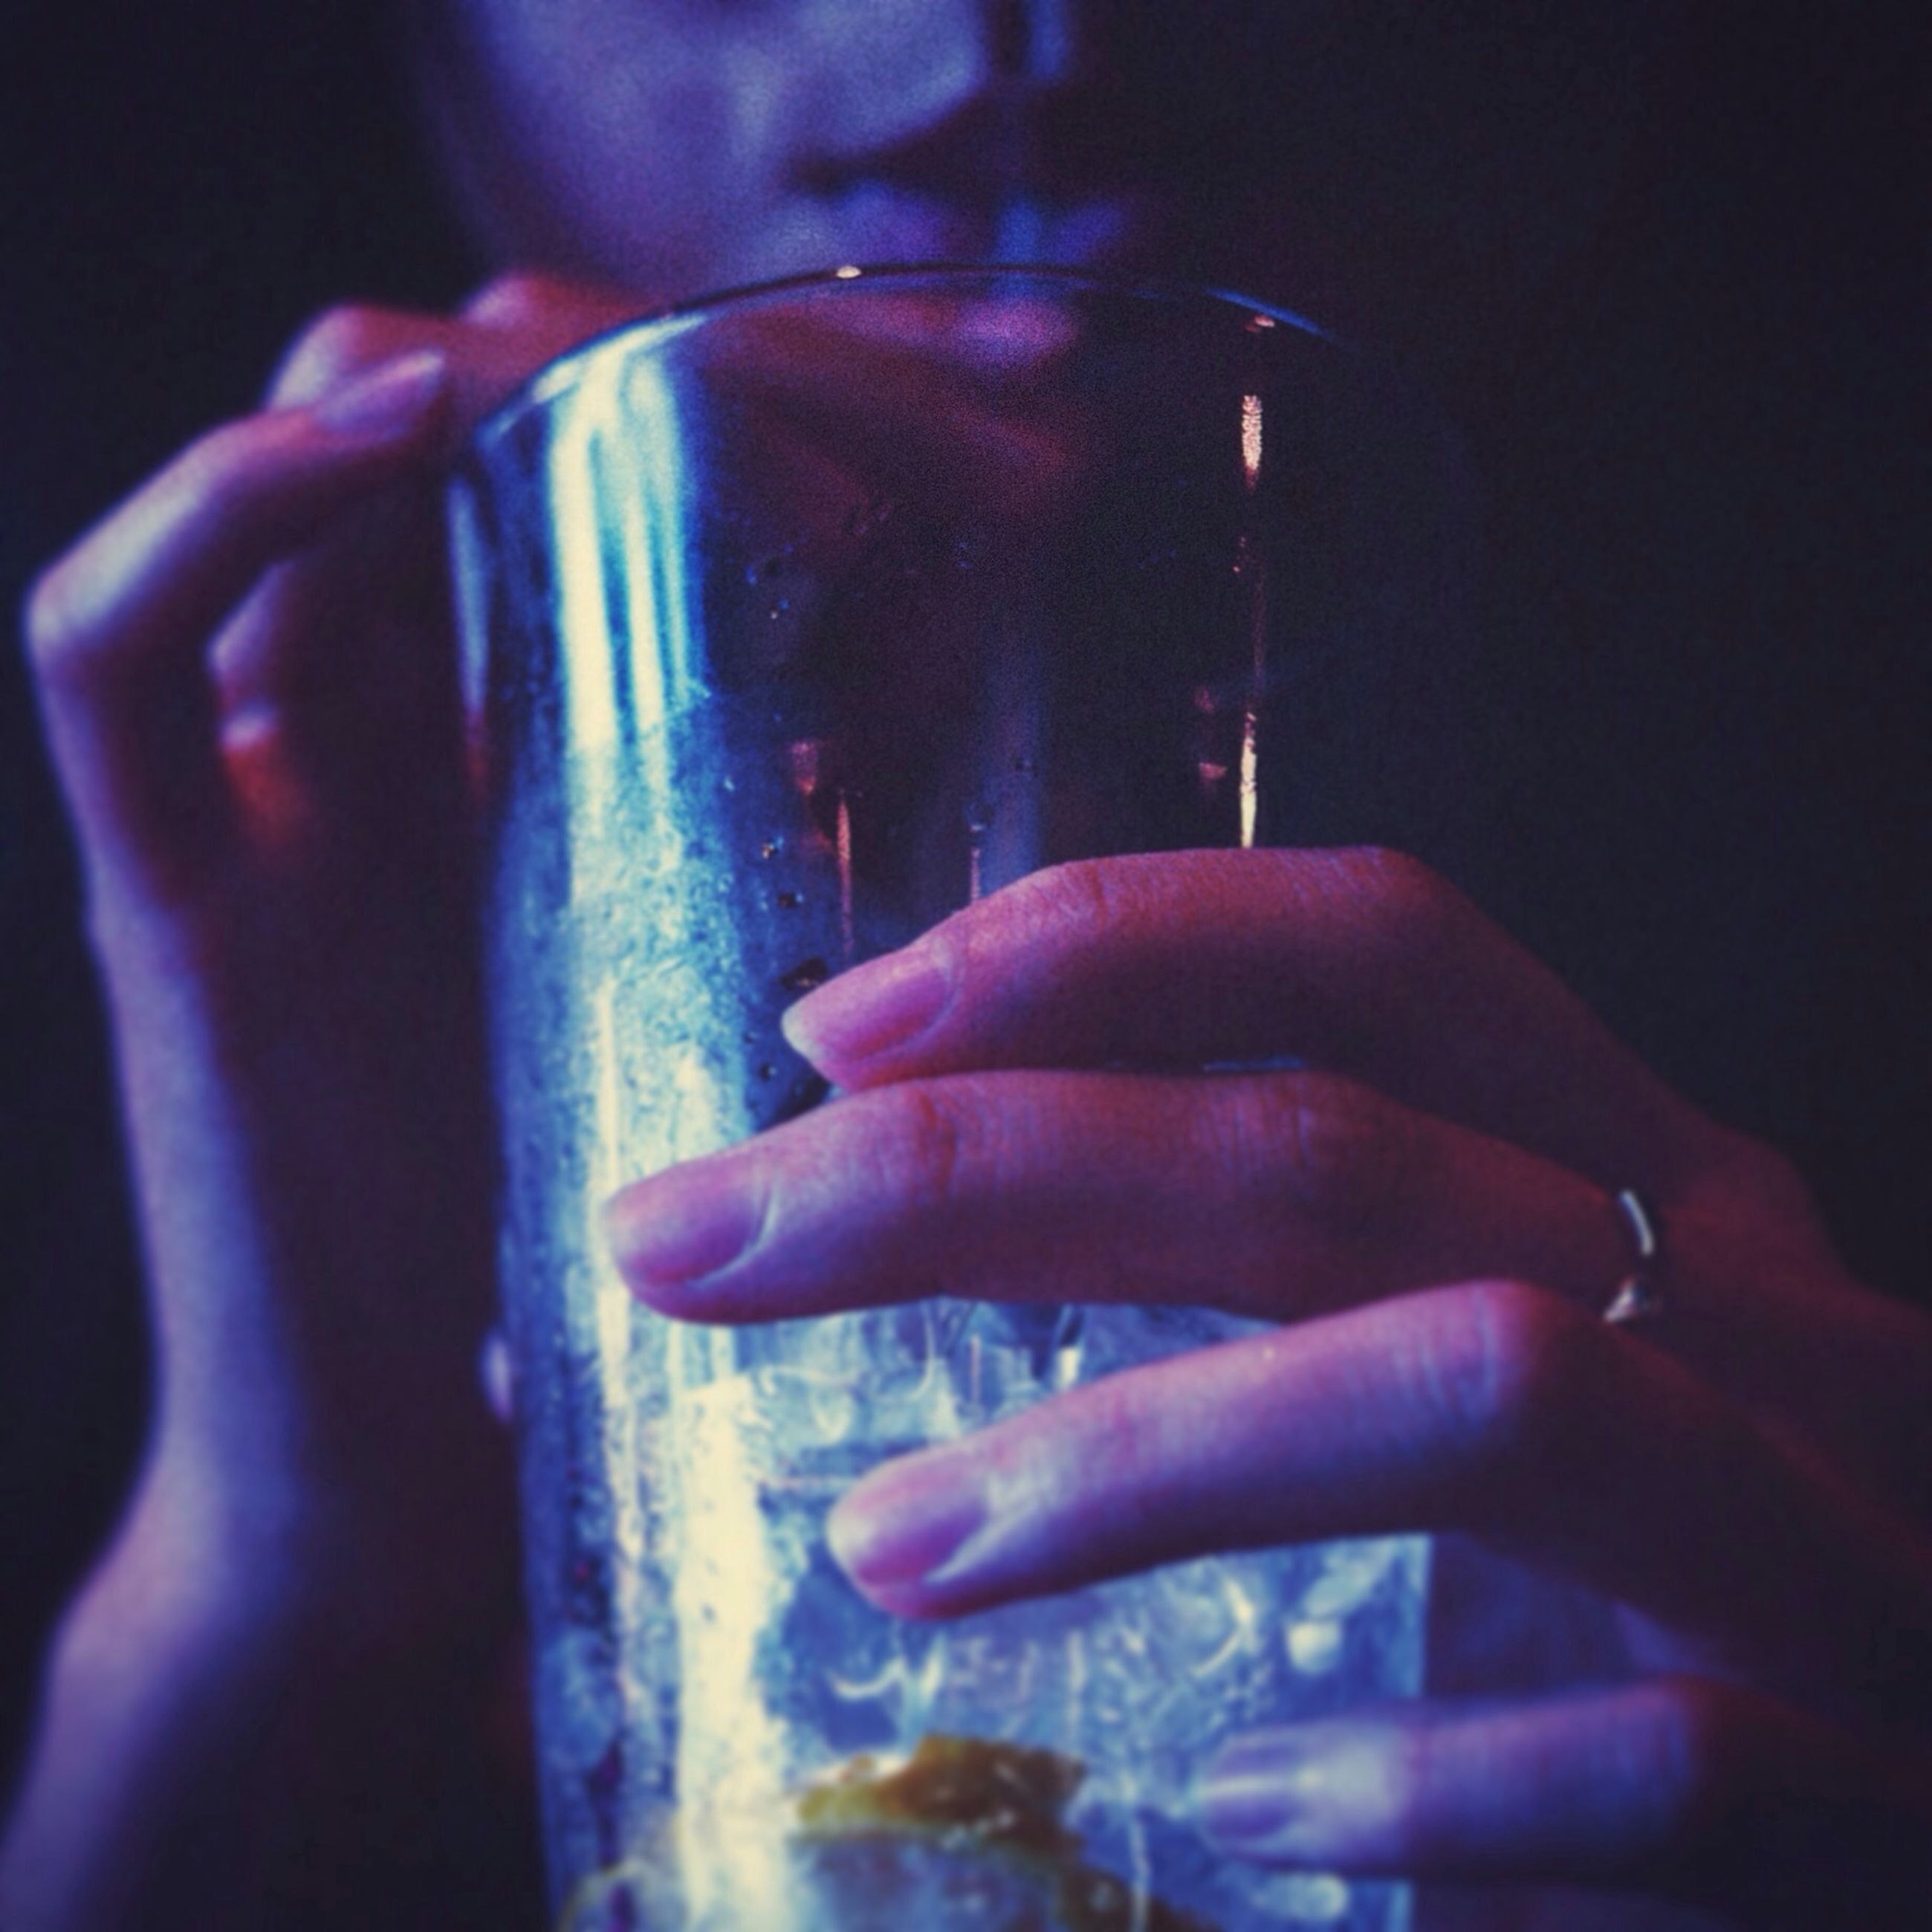 person, holding, part of, cropped, indoors, human finger, focus on foreground, lifestyles, close-up, unrecognizable person, men, leisure activity, refreshment, addiction, personal perspective, glass - material